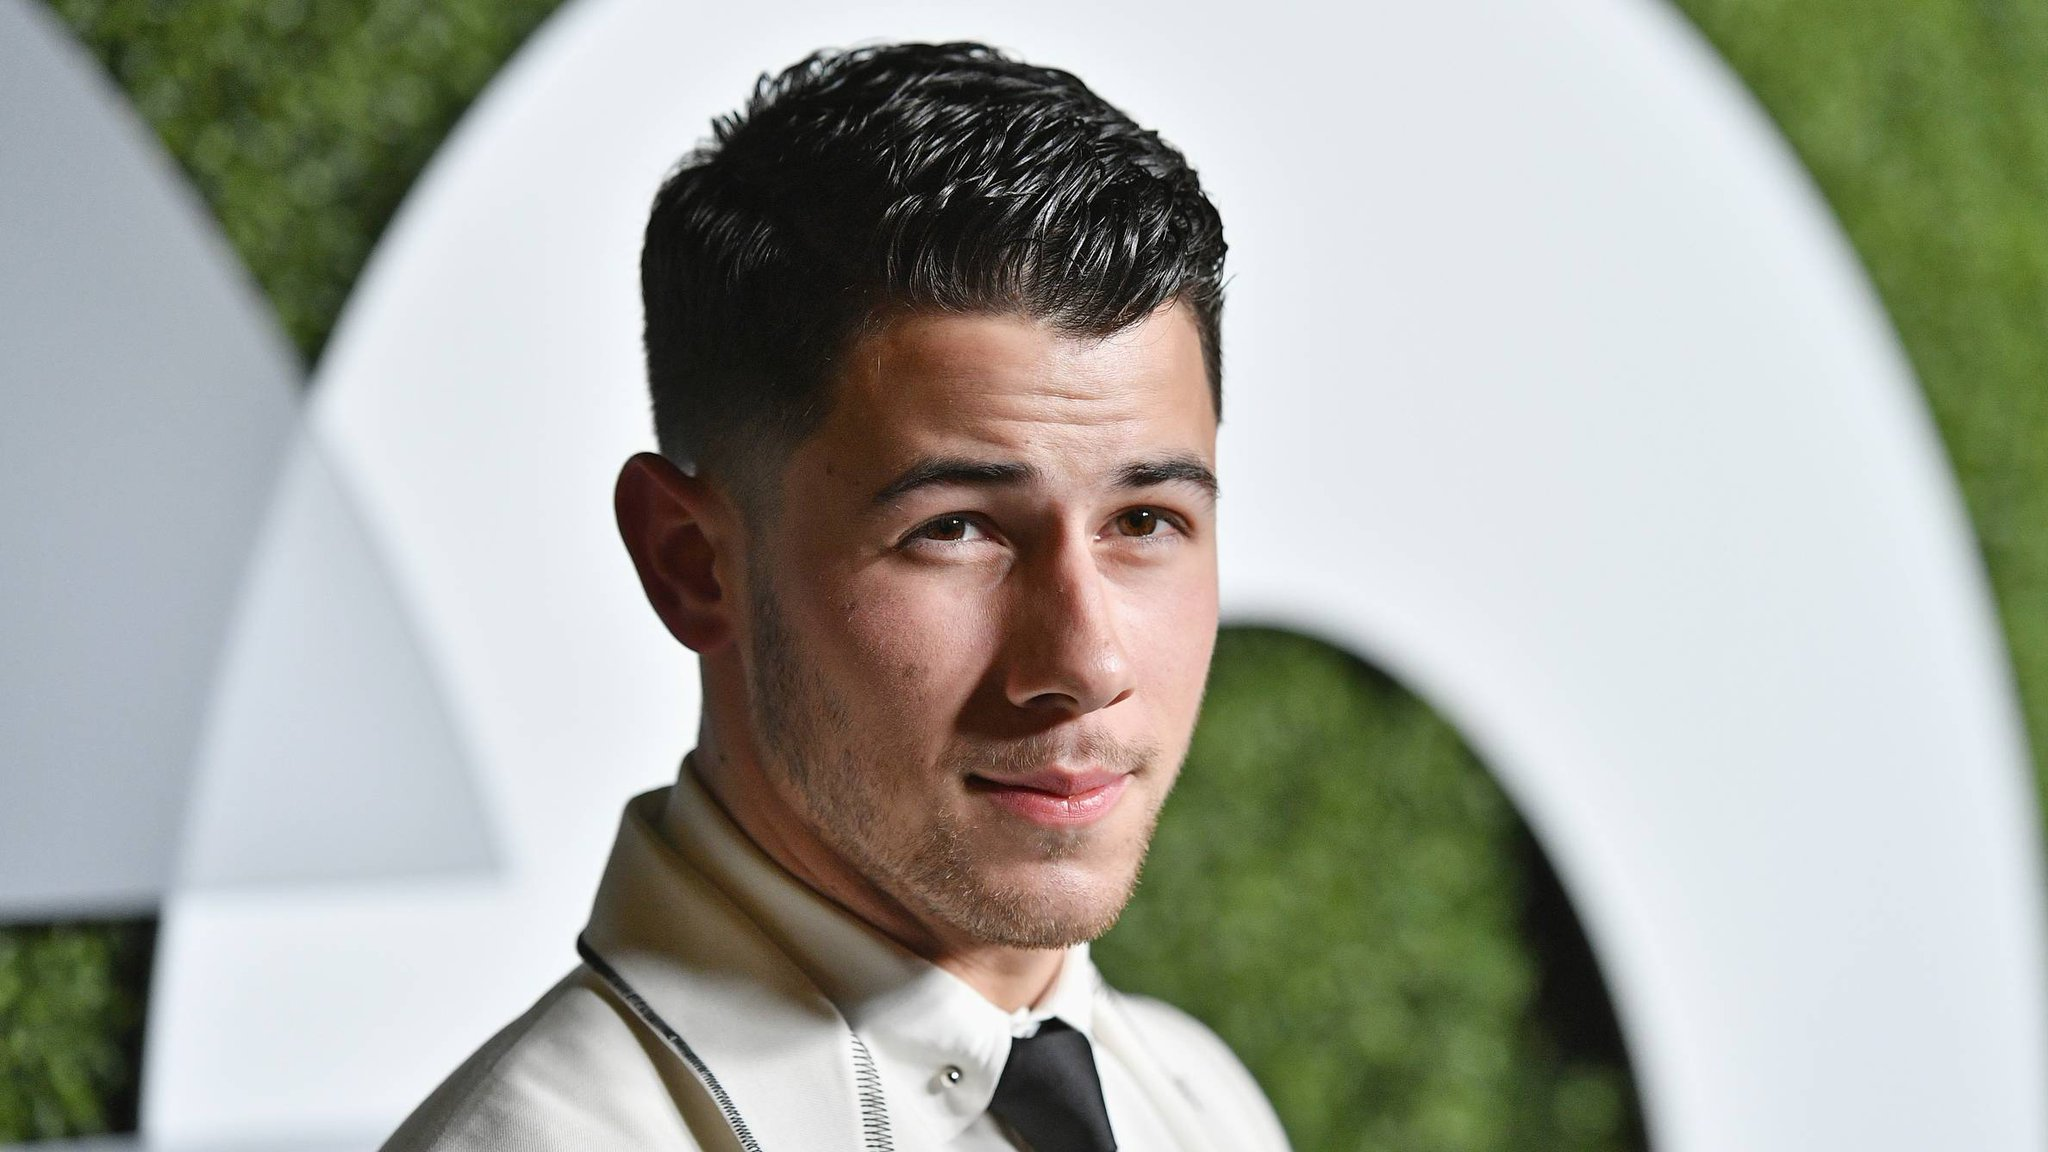 �� @NickJonas' #RememberIToldYou sizzles in all the right ways: https://t.co/WJuVXVZD1T https://t.co/ifNdSoah82